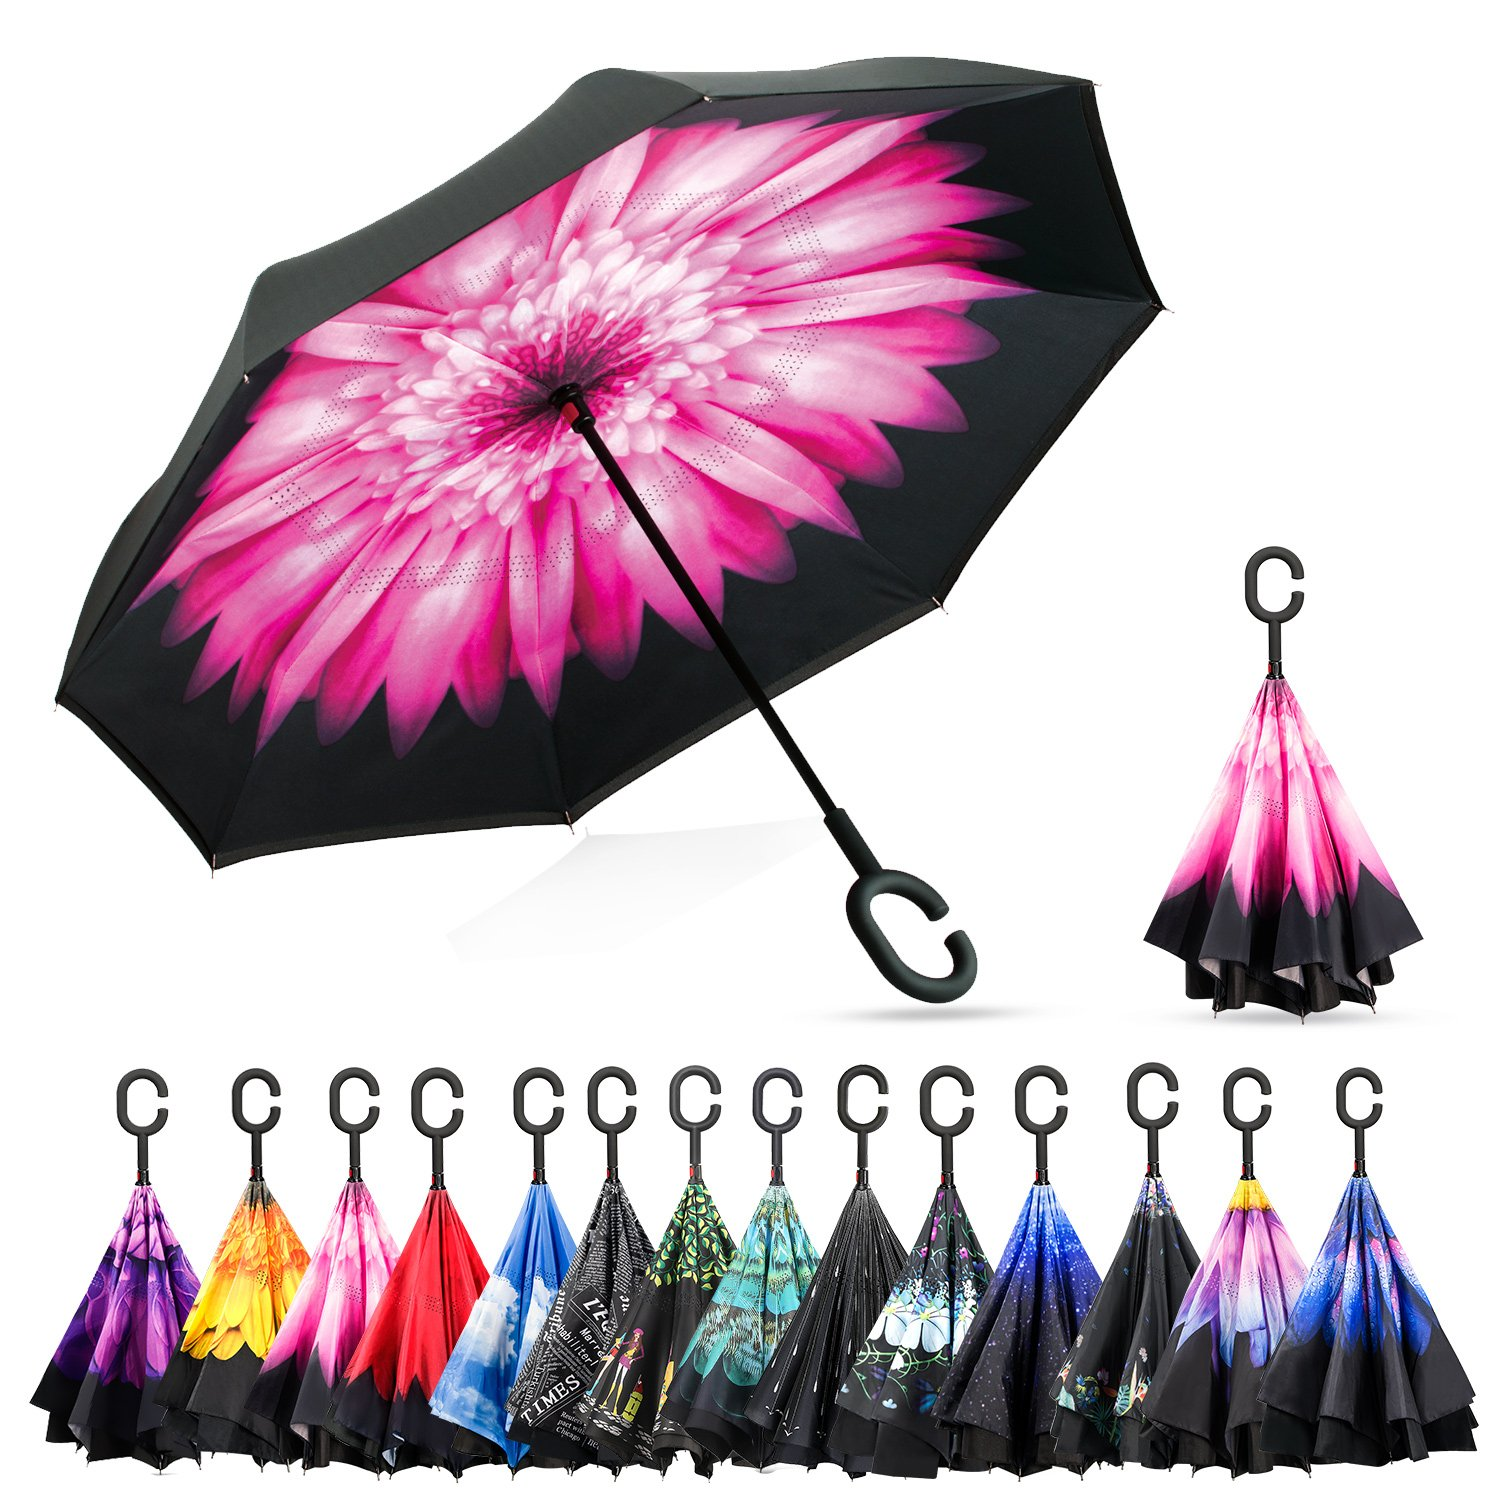 Elover 32in X 8 Panels Double Layer Inverted Umbrella, B - Pink Daisy